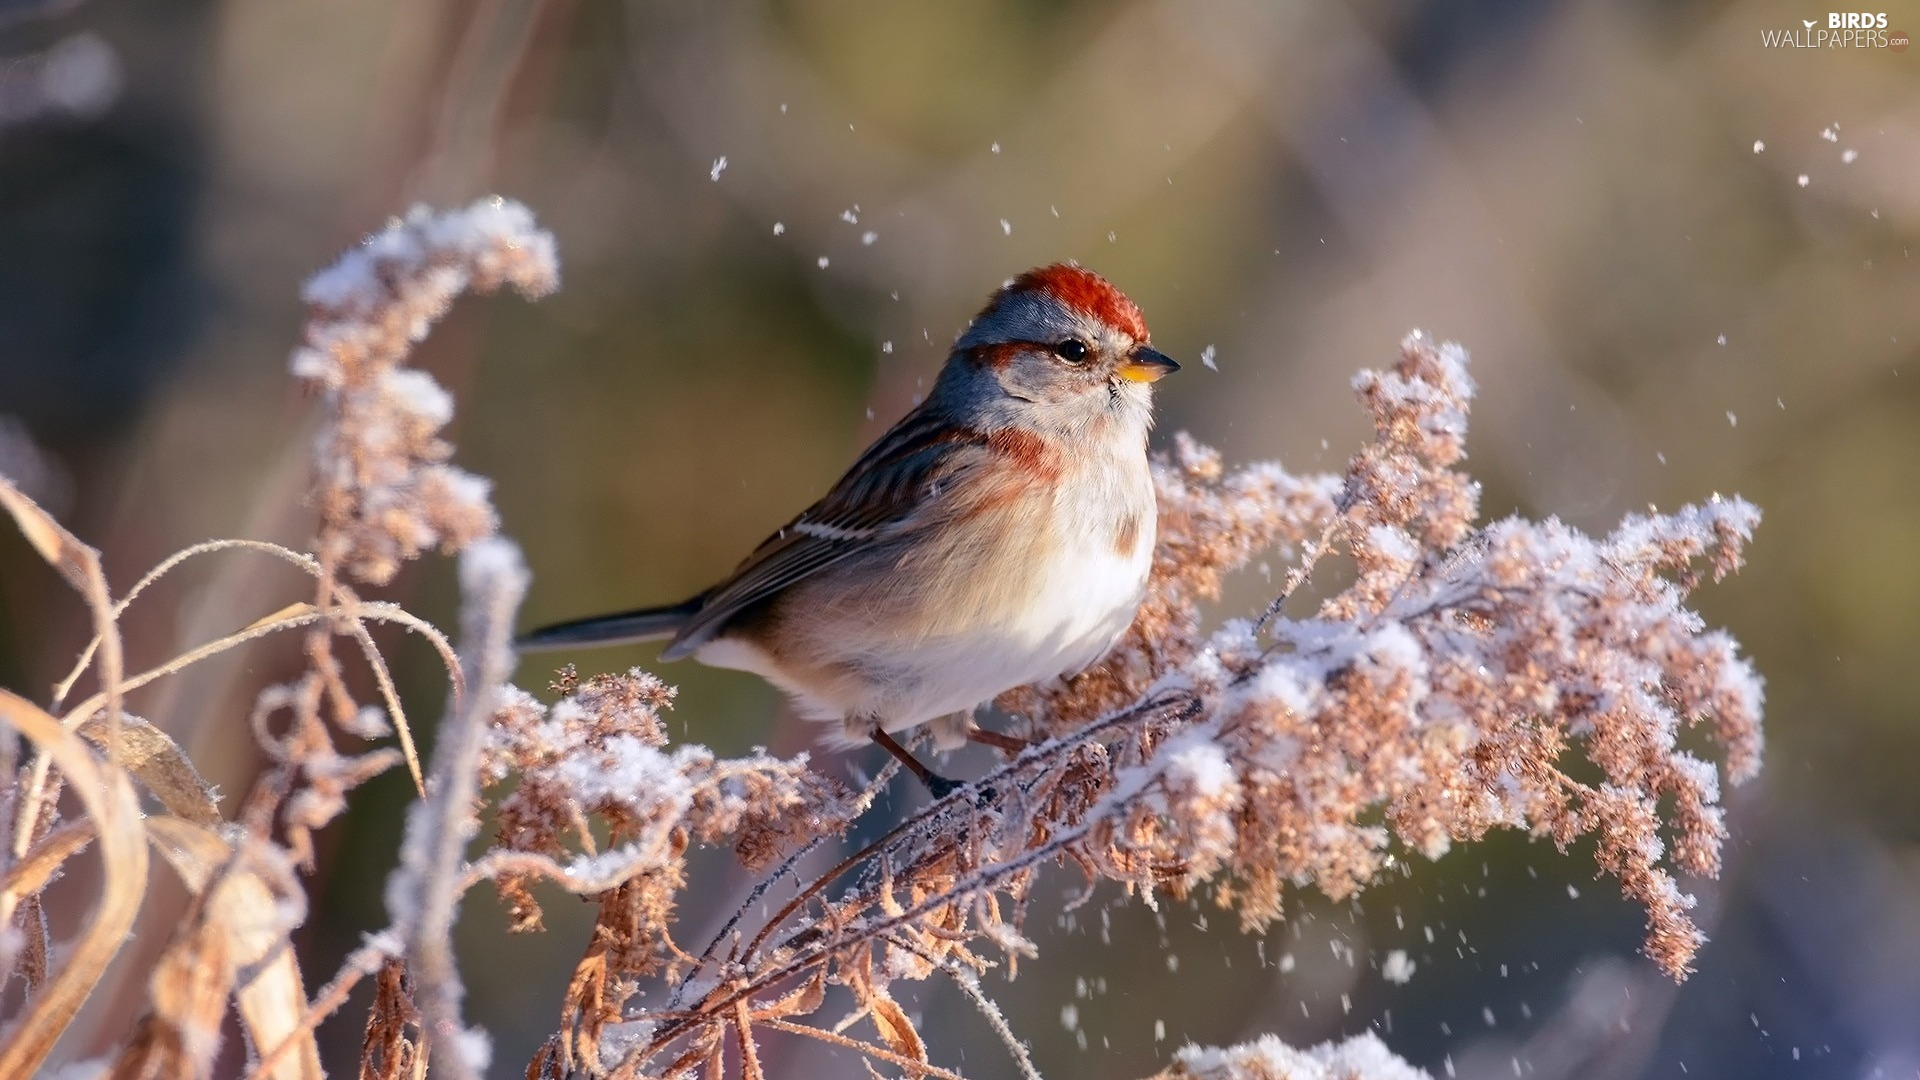 Bird, redpoll, A snow-covered, plant, winter